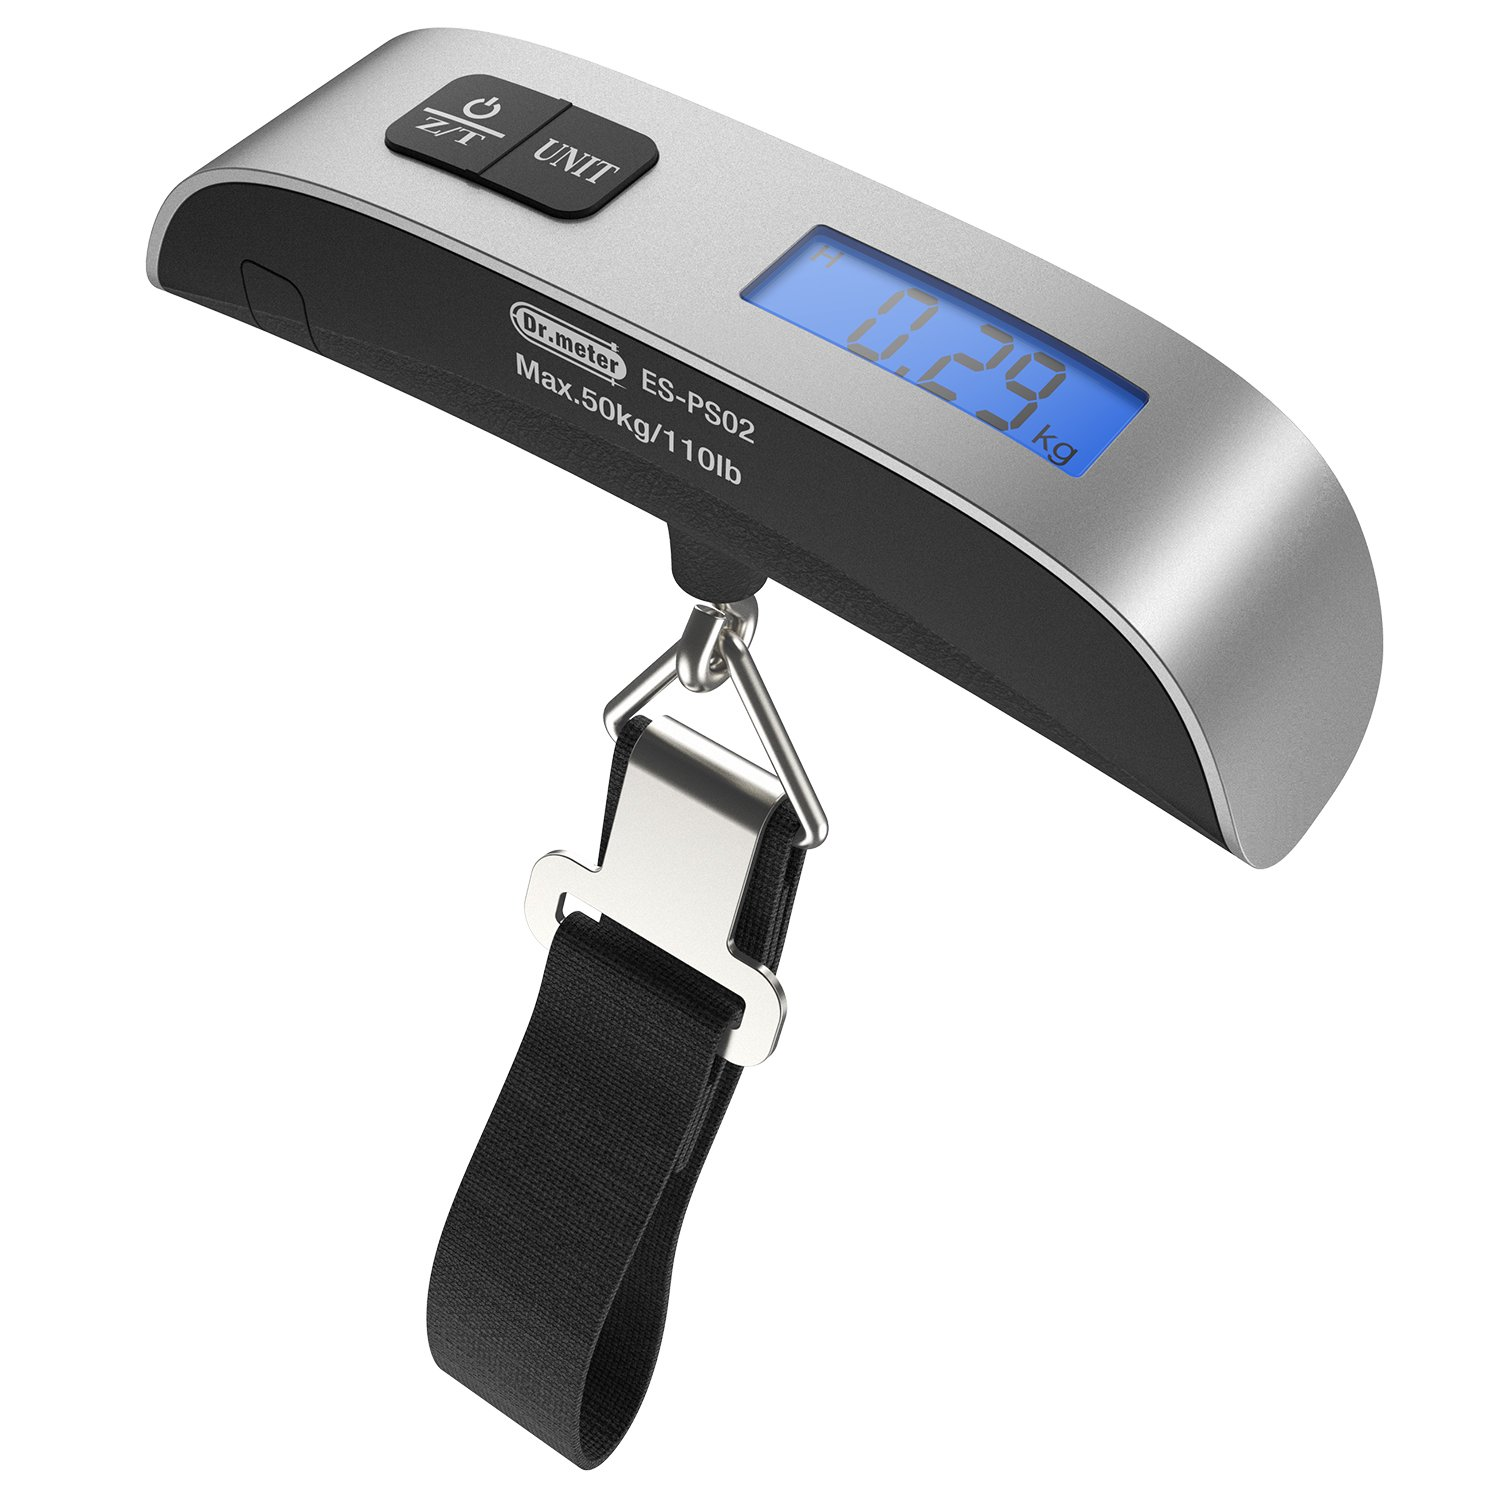 Backlight LCD Display Luggage Scale, Dr.meter 110lb/50kg Electronic Balance Digital Postal Luggage Hanging Scale with Rubber Paint Handle,Temperature Sensor, Silver/Black IC-HS02